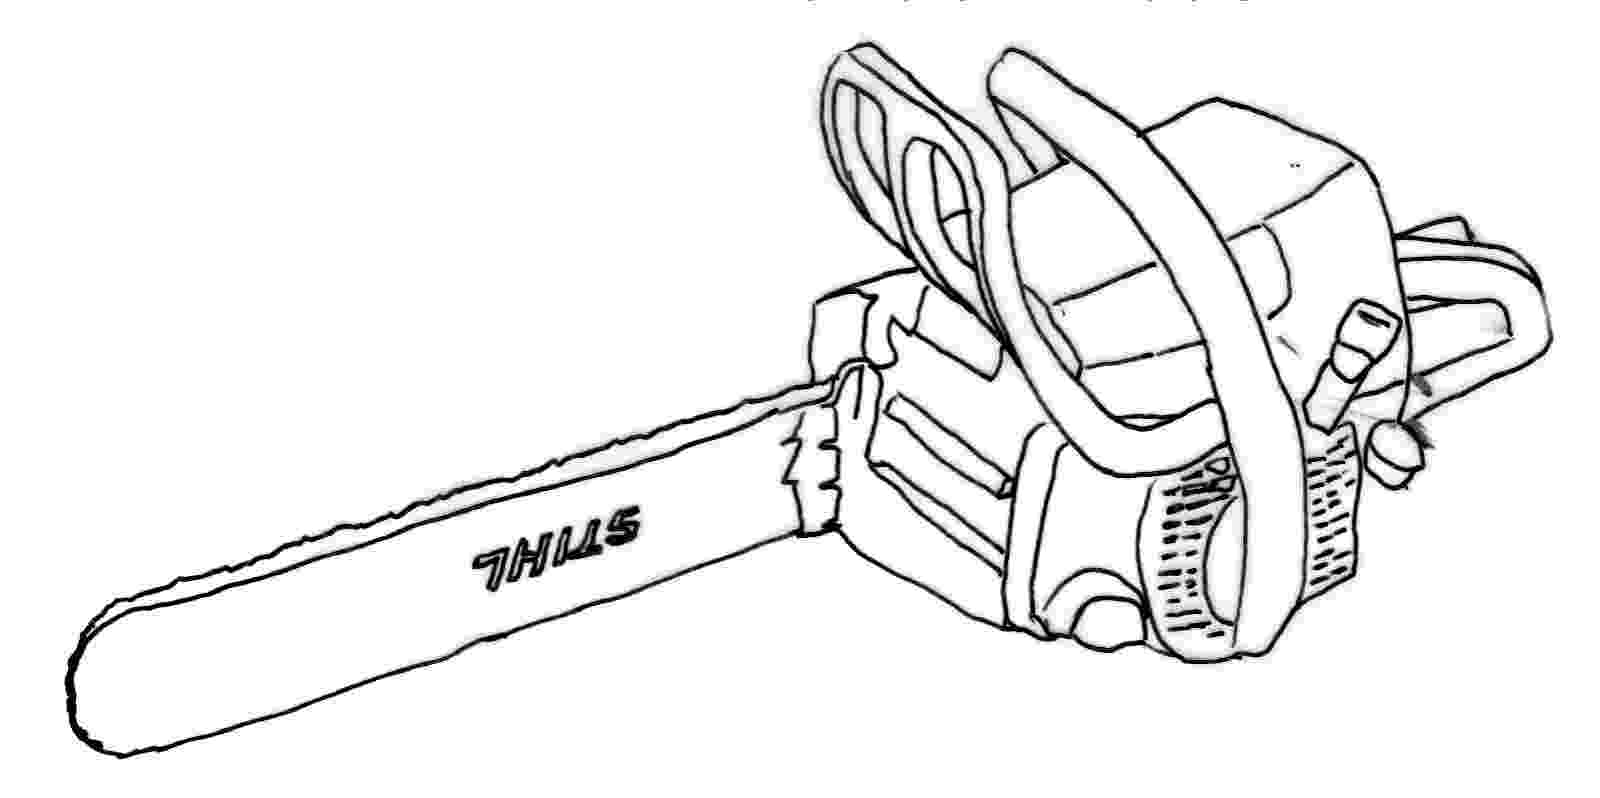 chainsaw coloring pages chain saw clip art cliparts pages coloring chainsaw